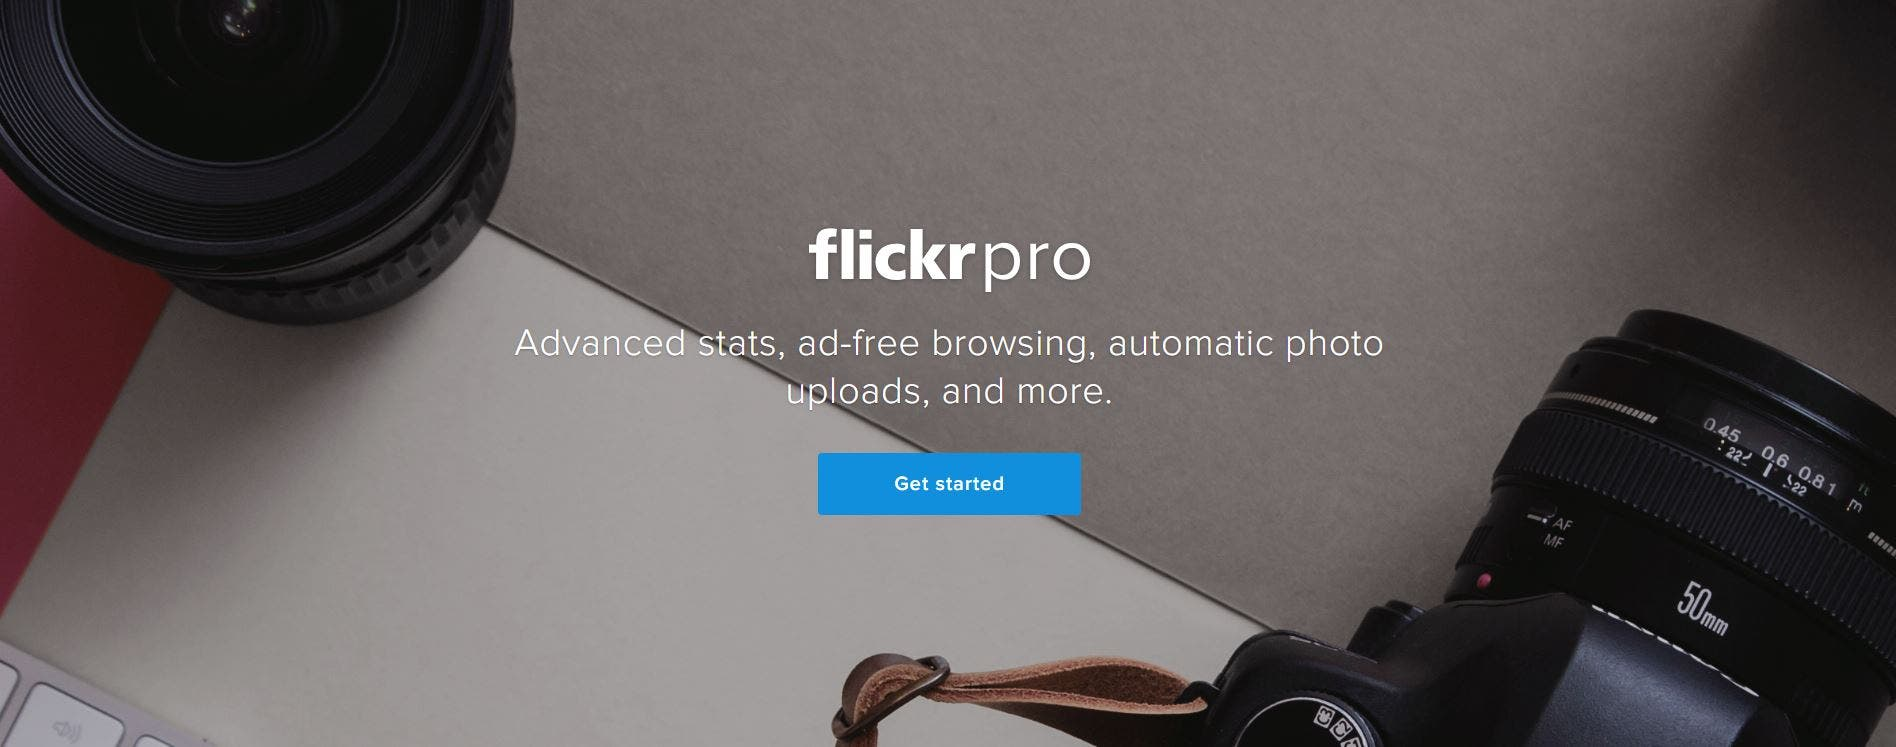 Flickr Offers 15% Off the First Year for Pro Accounts